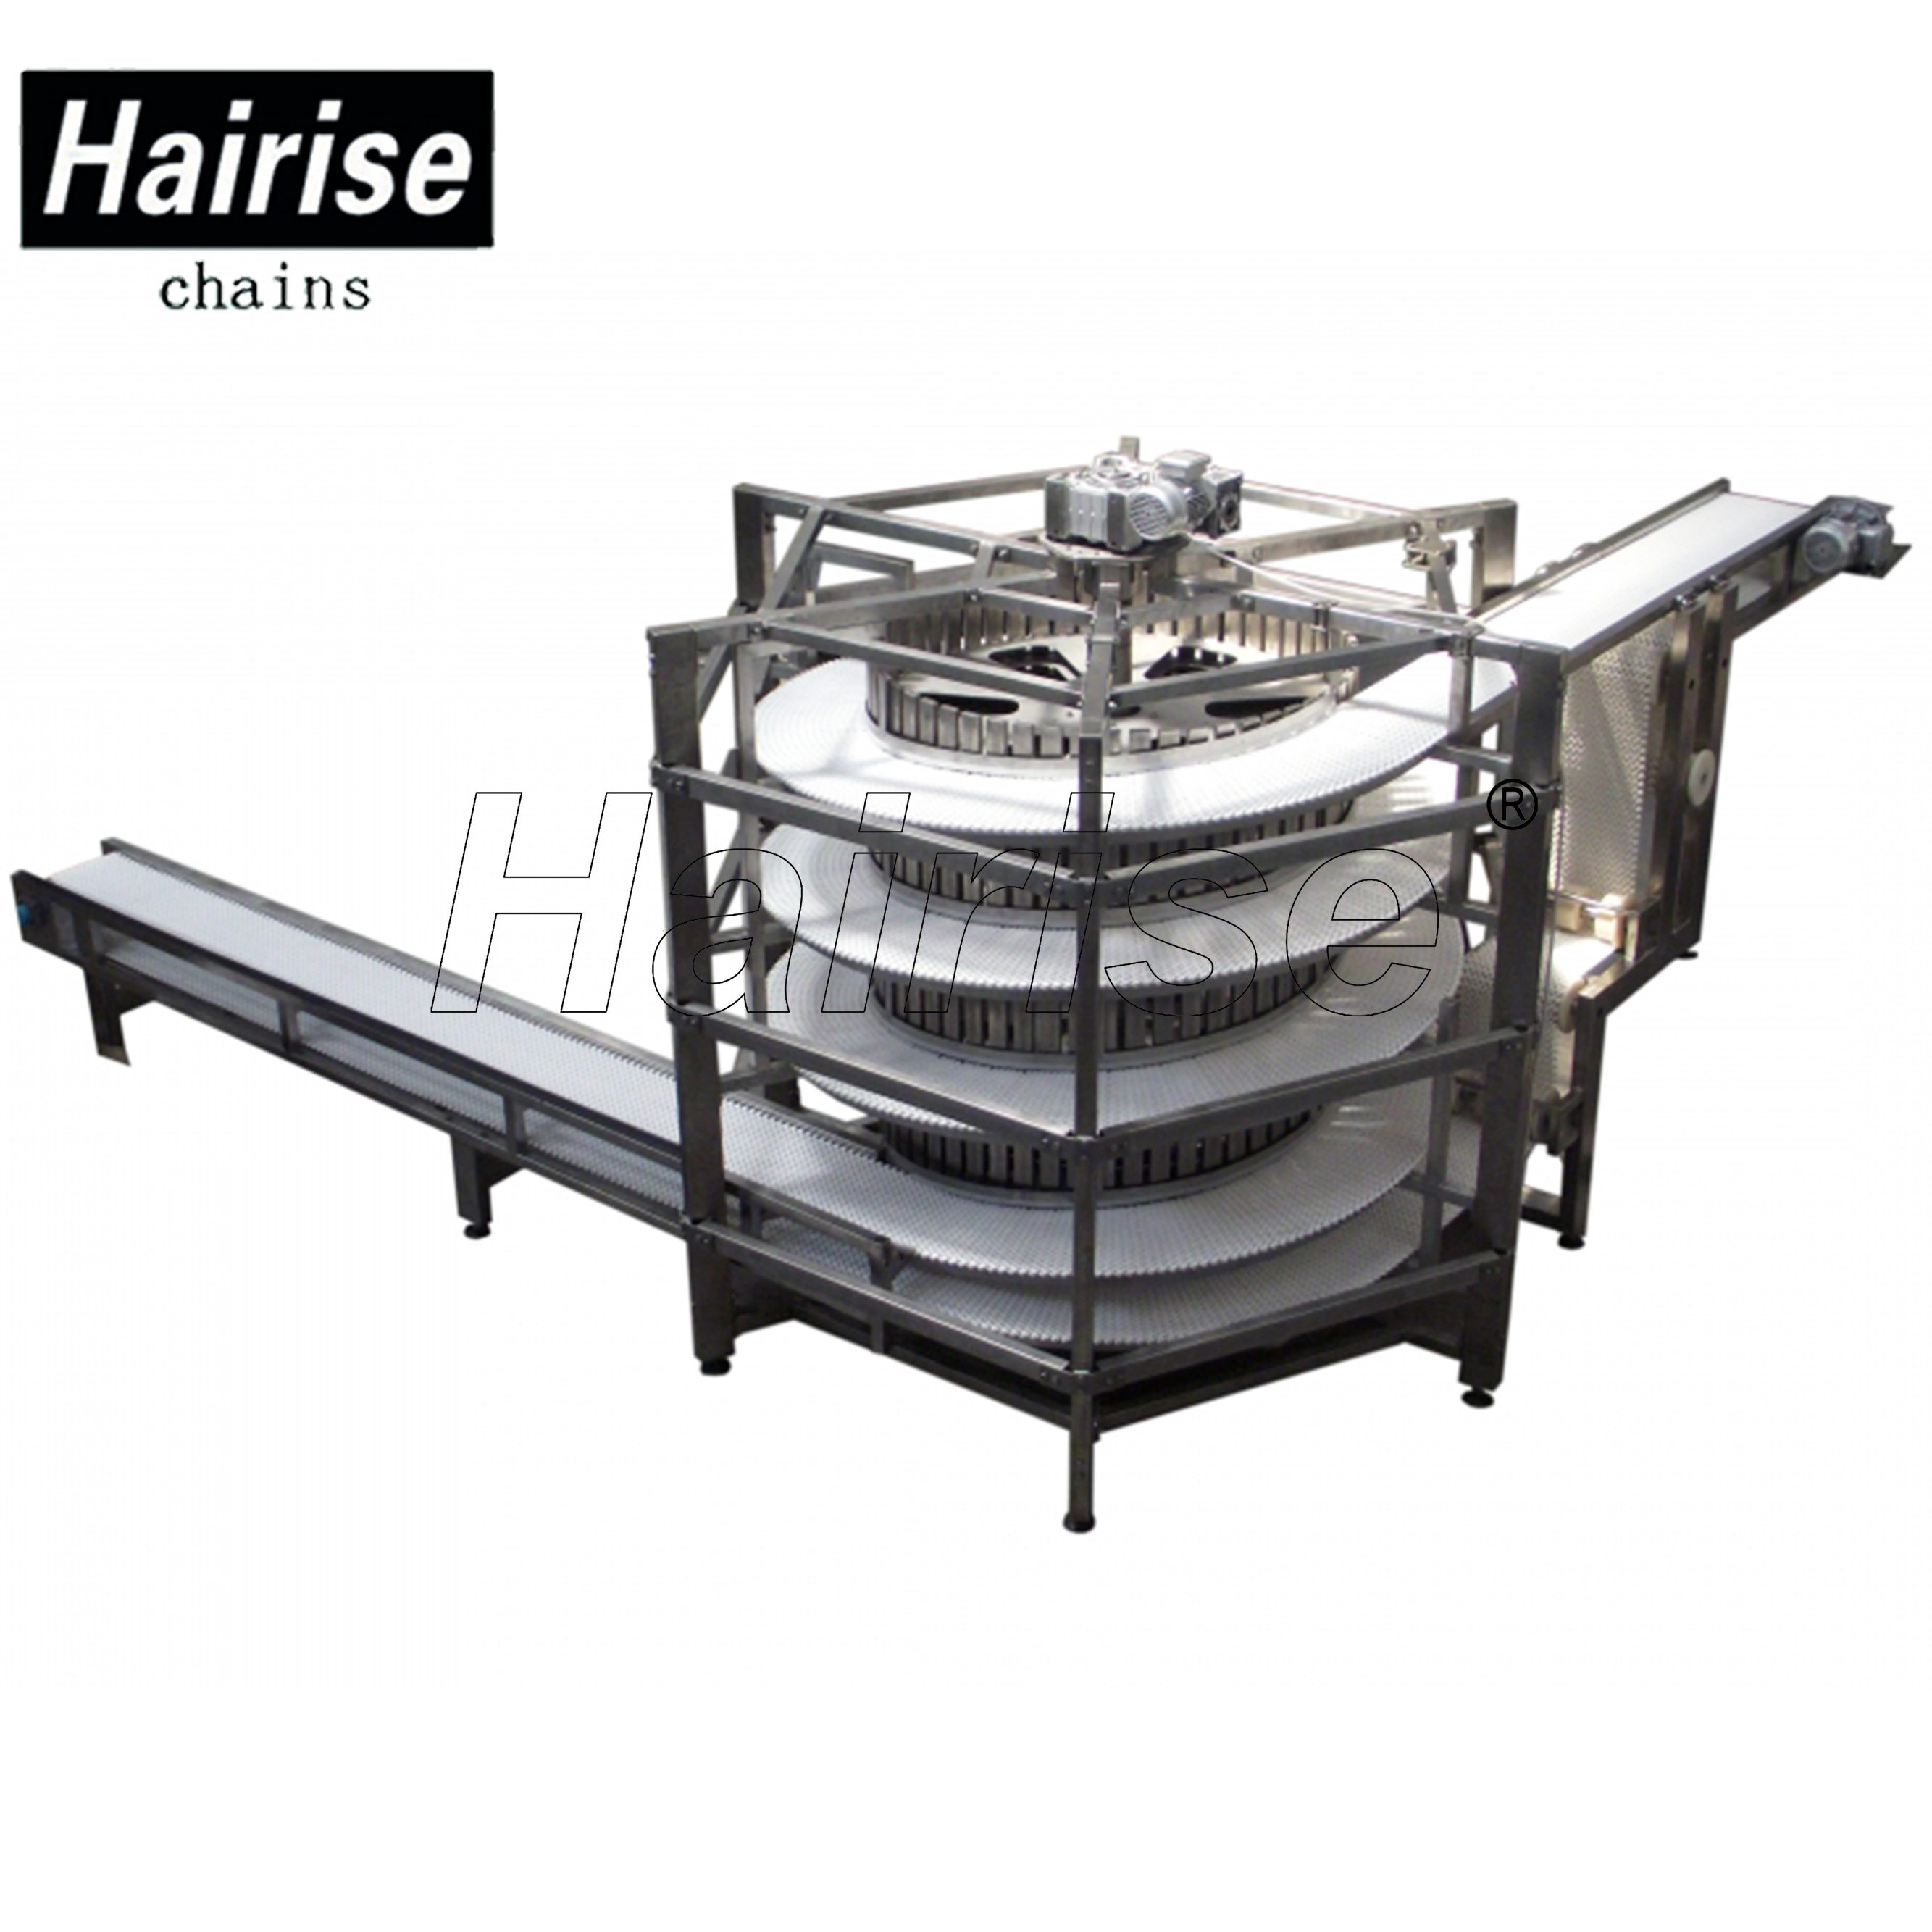 Hairise Screw Cooling Conveyors with Flush Grid Type Belts Featured Image